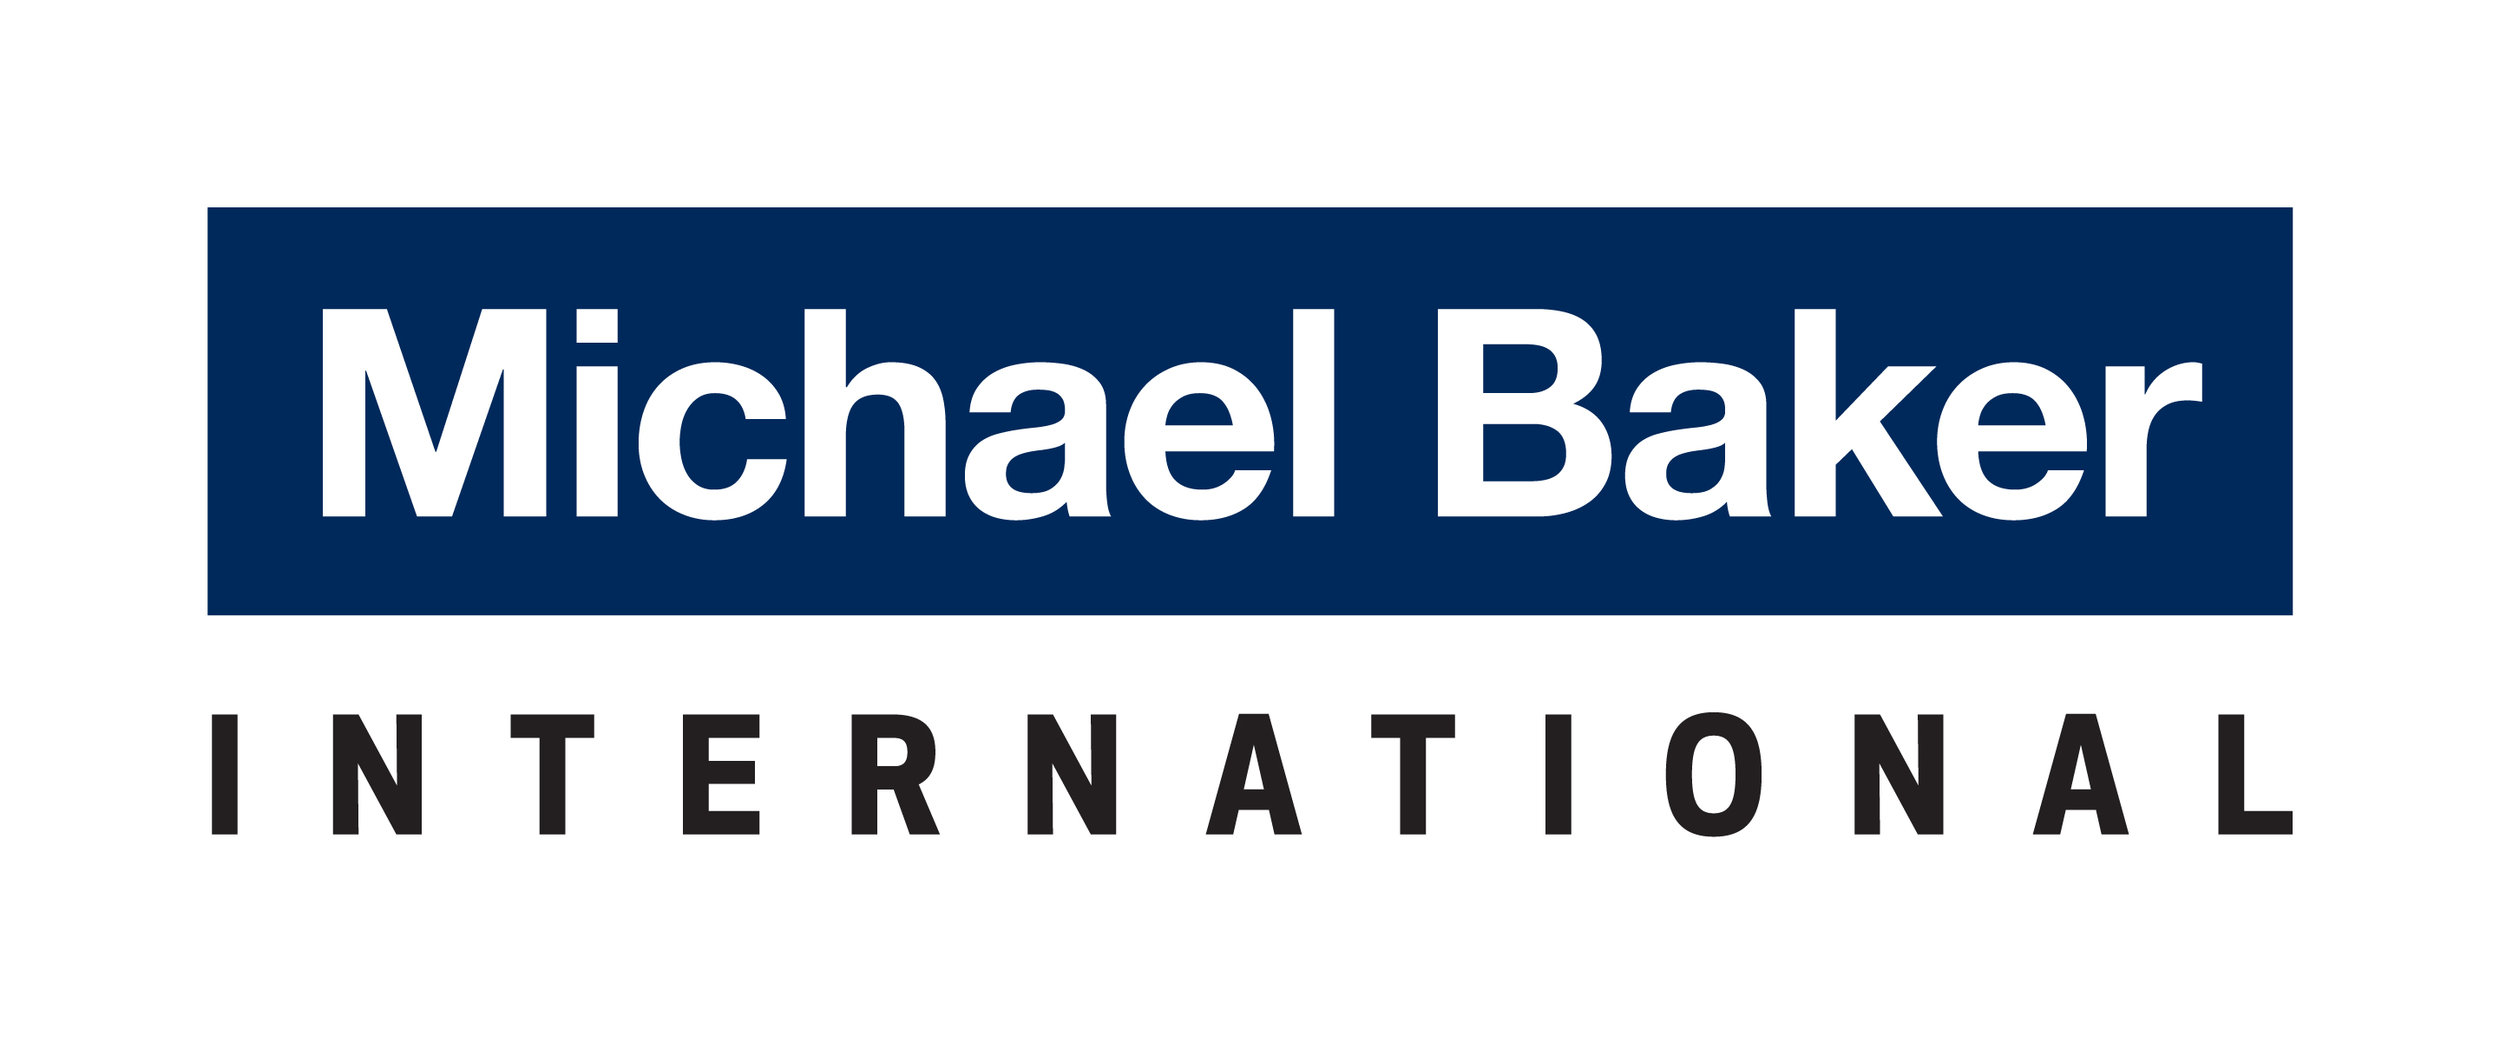 Michael Baker International.jpg